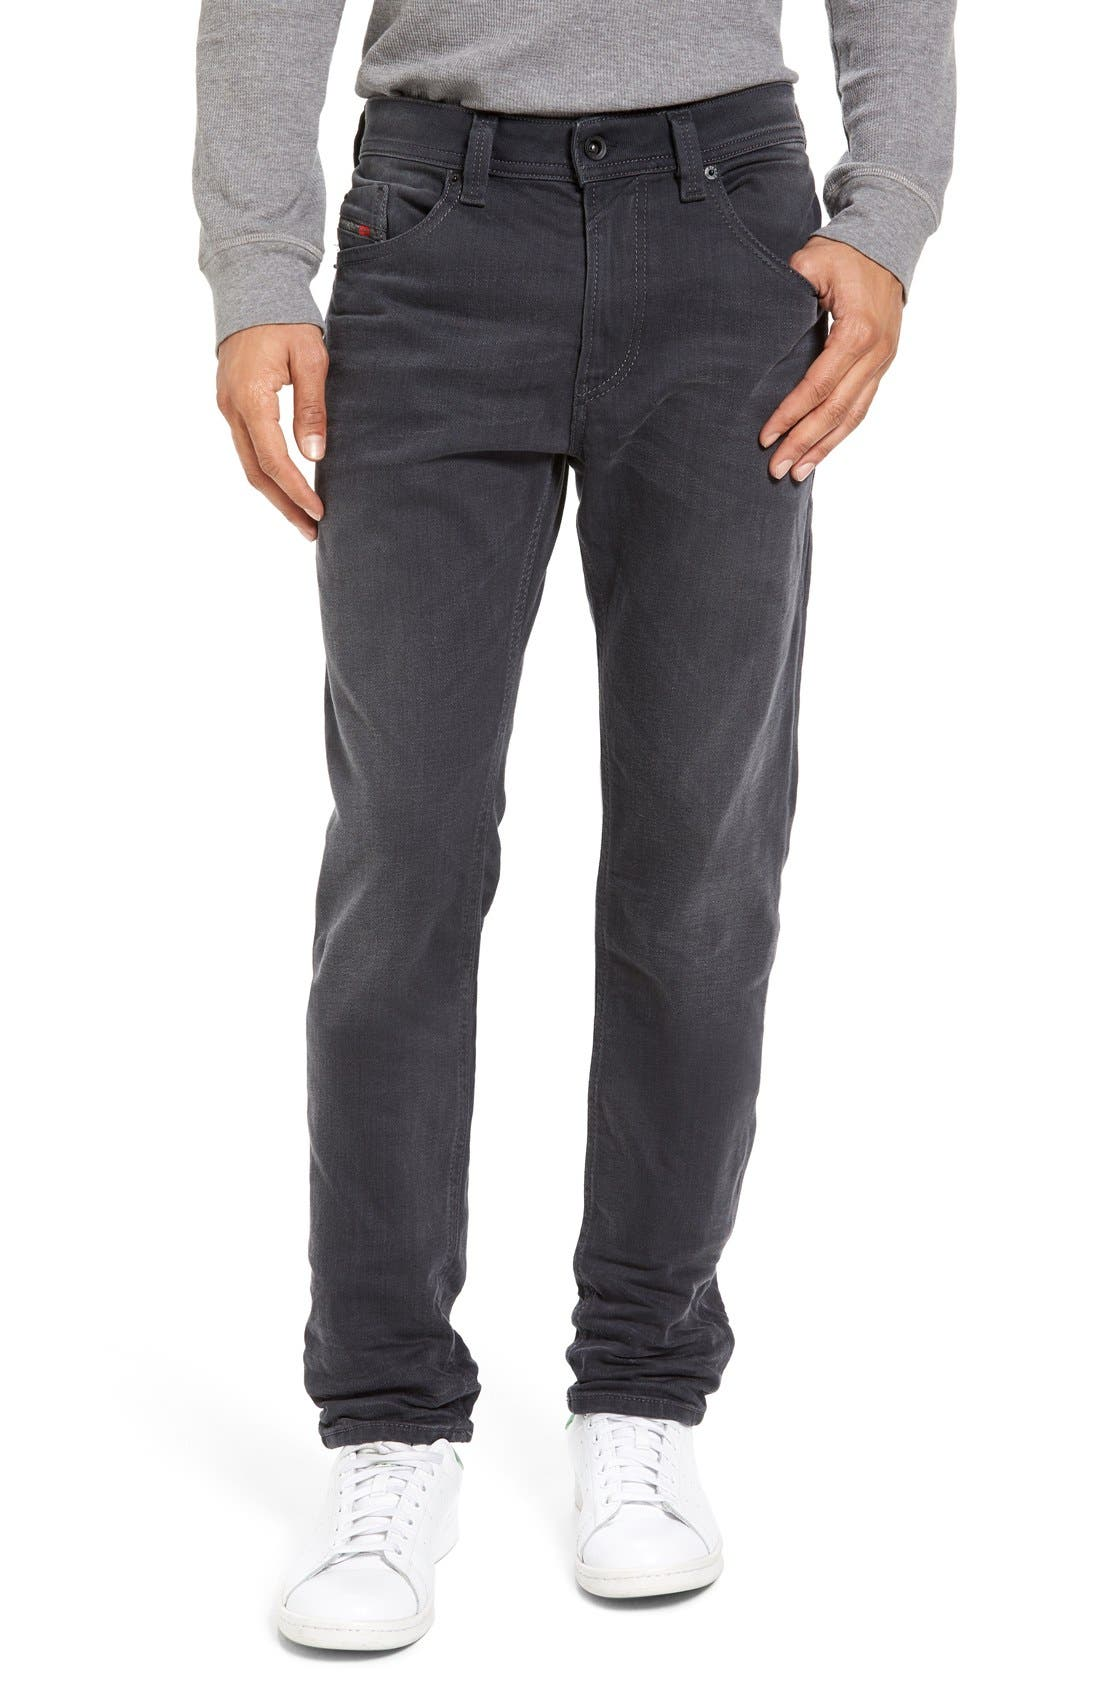 Thommer Slim Fit Jeans,                             Main thumbnail 1, color,